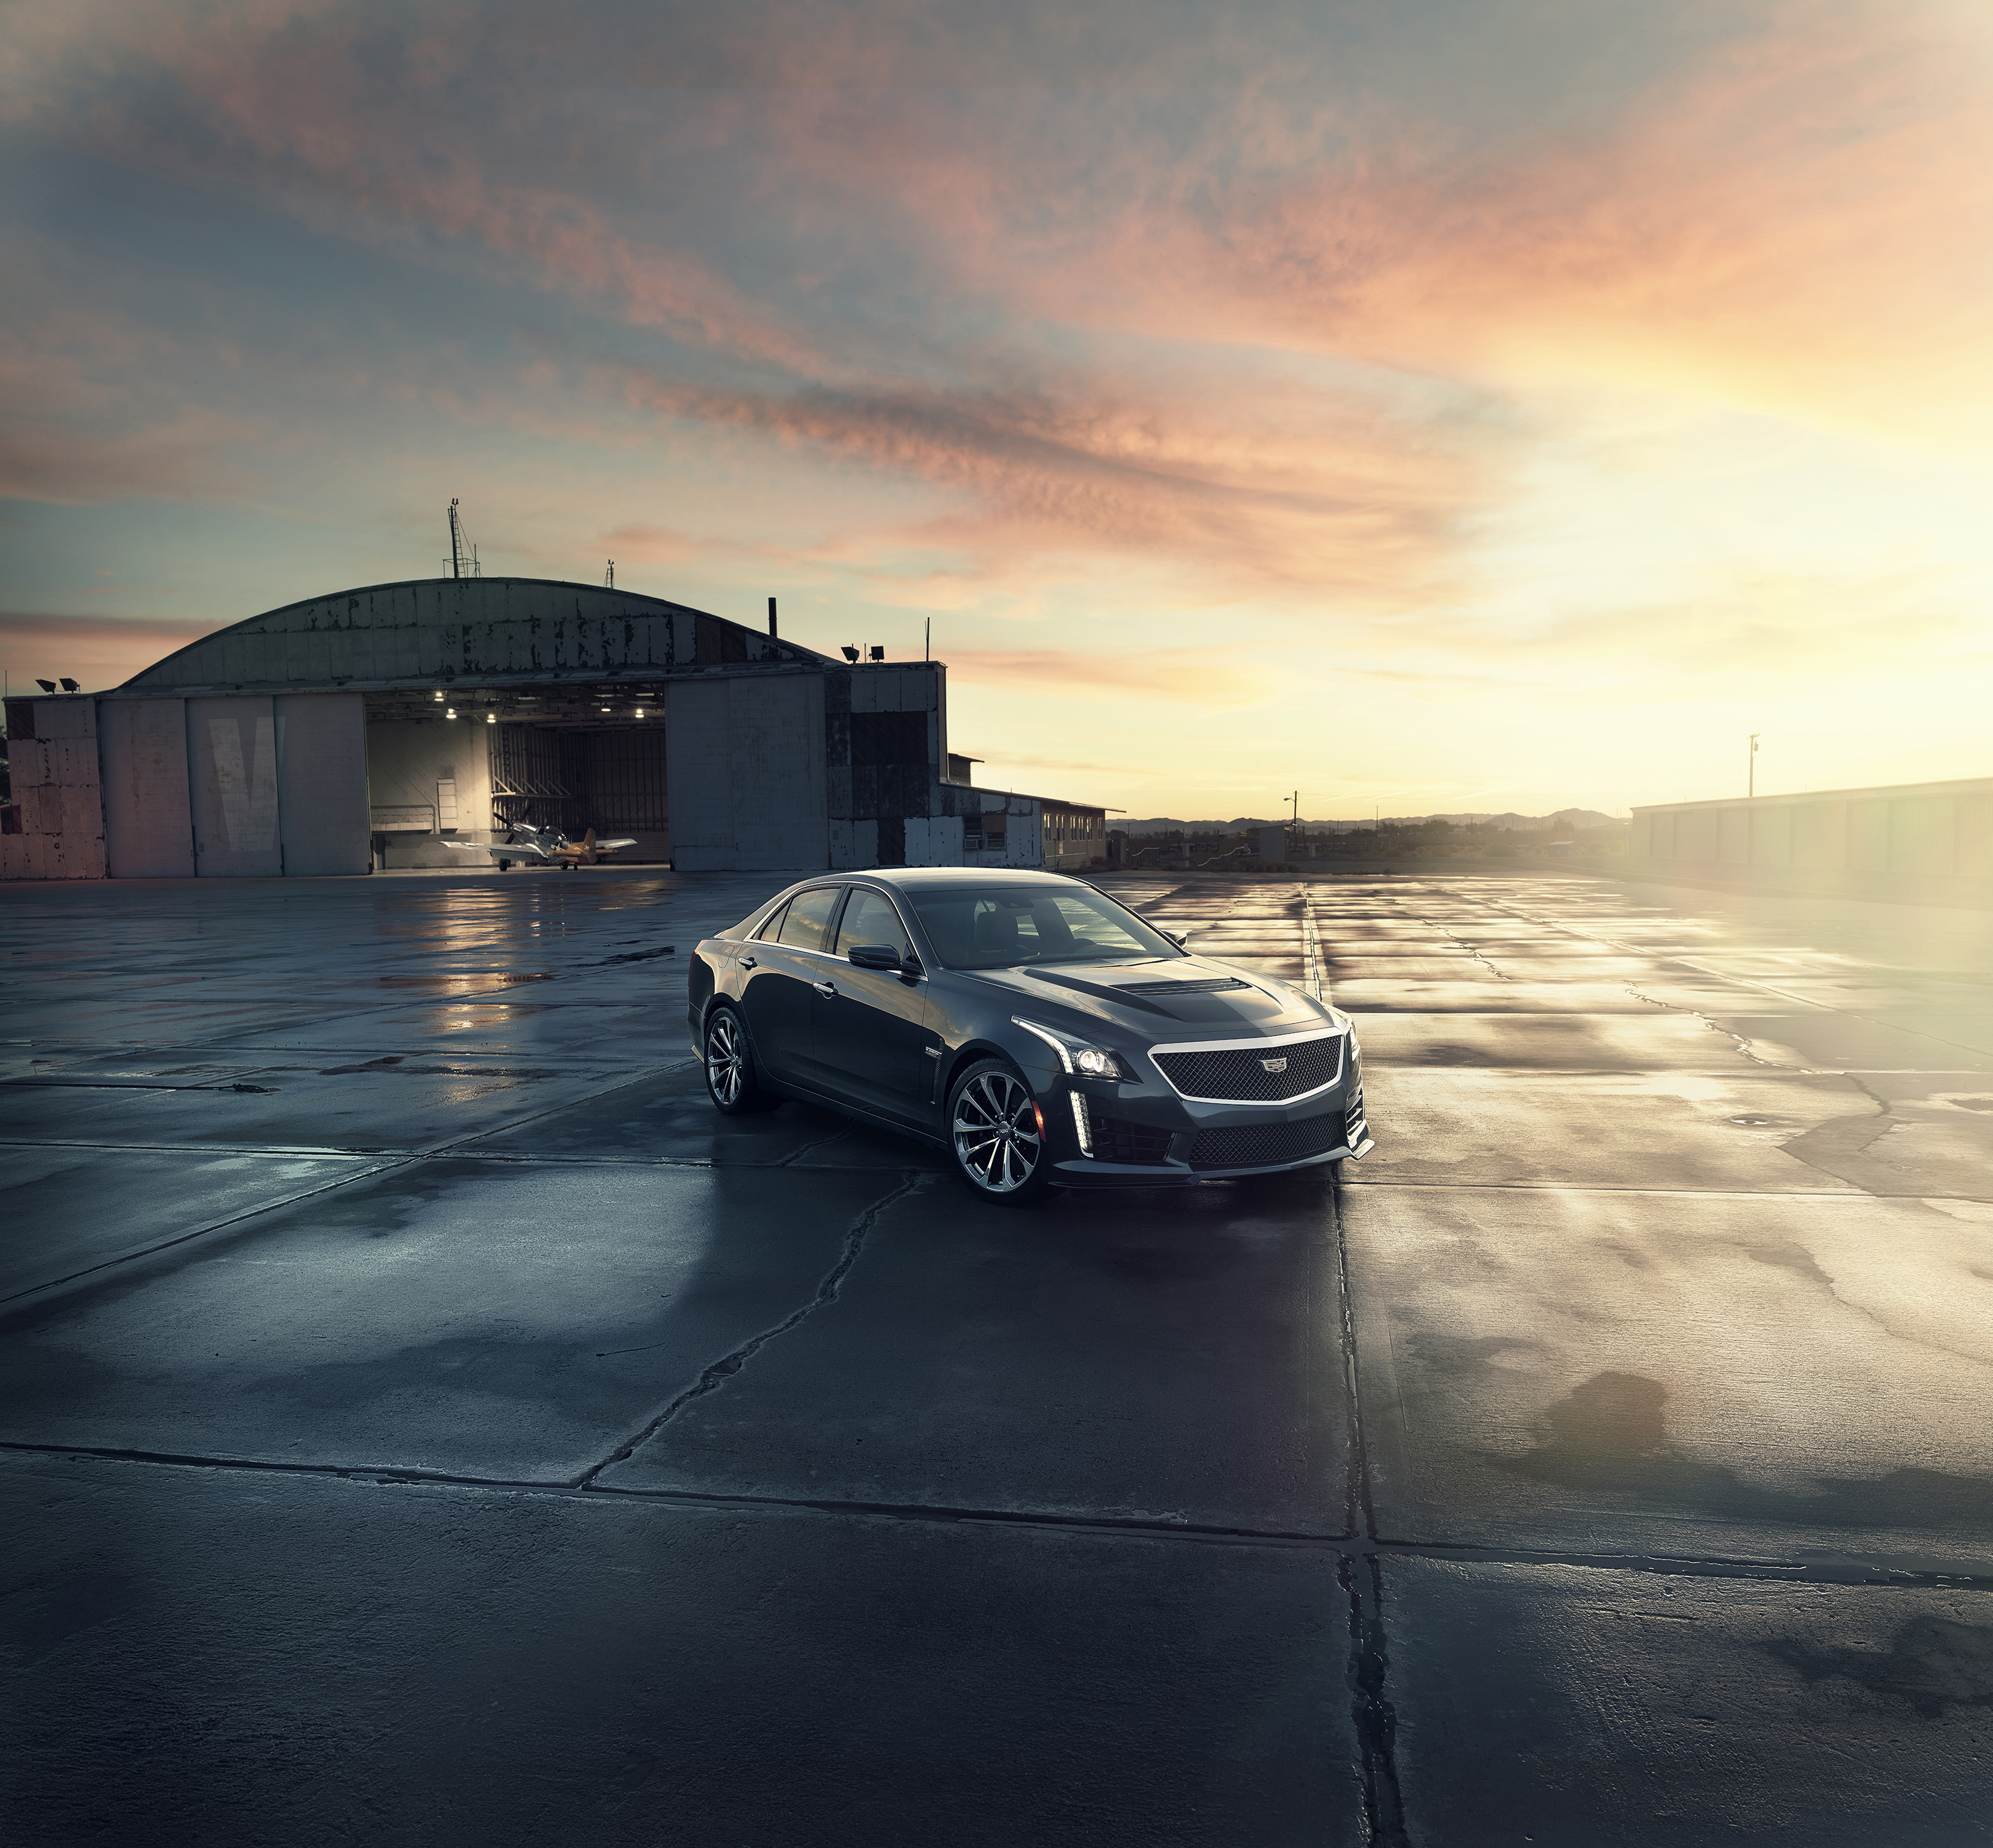 Next Generation 640 Hp Cadillac Cts V Launches This Summer